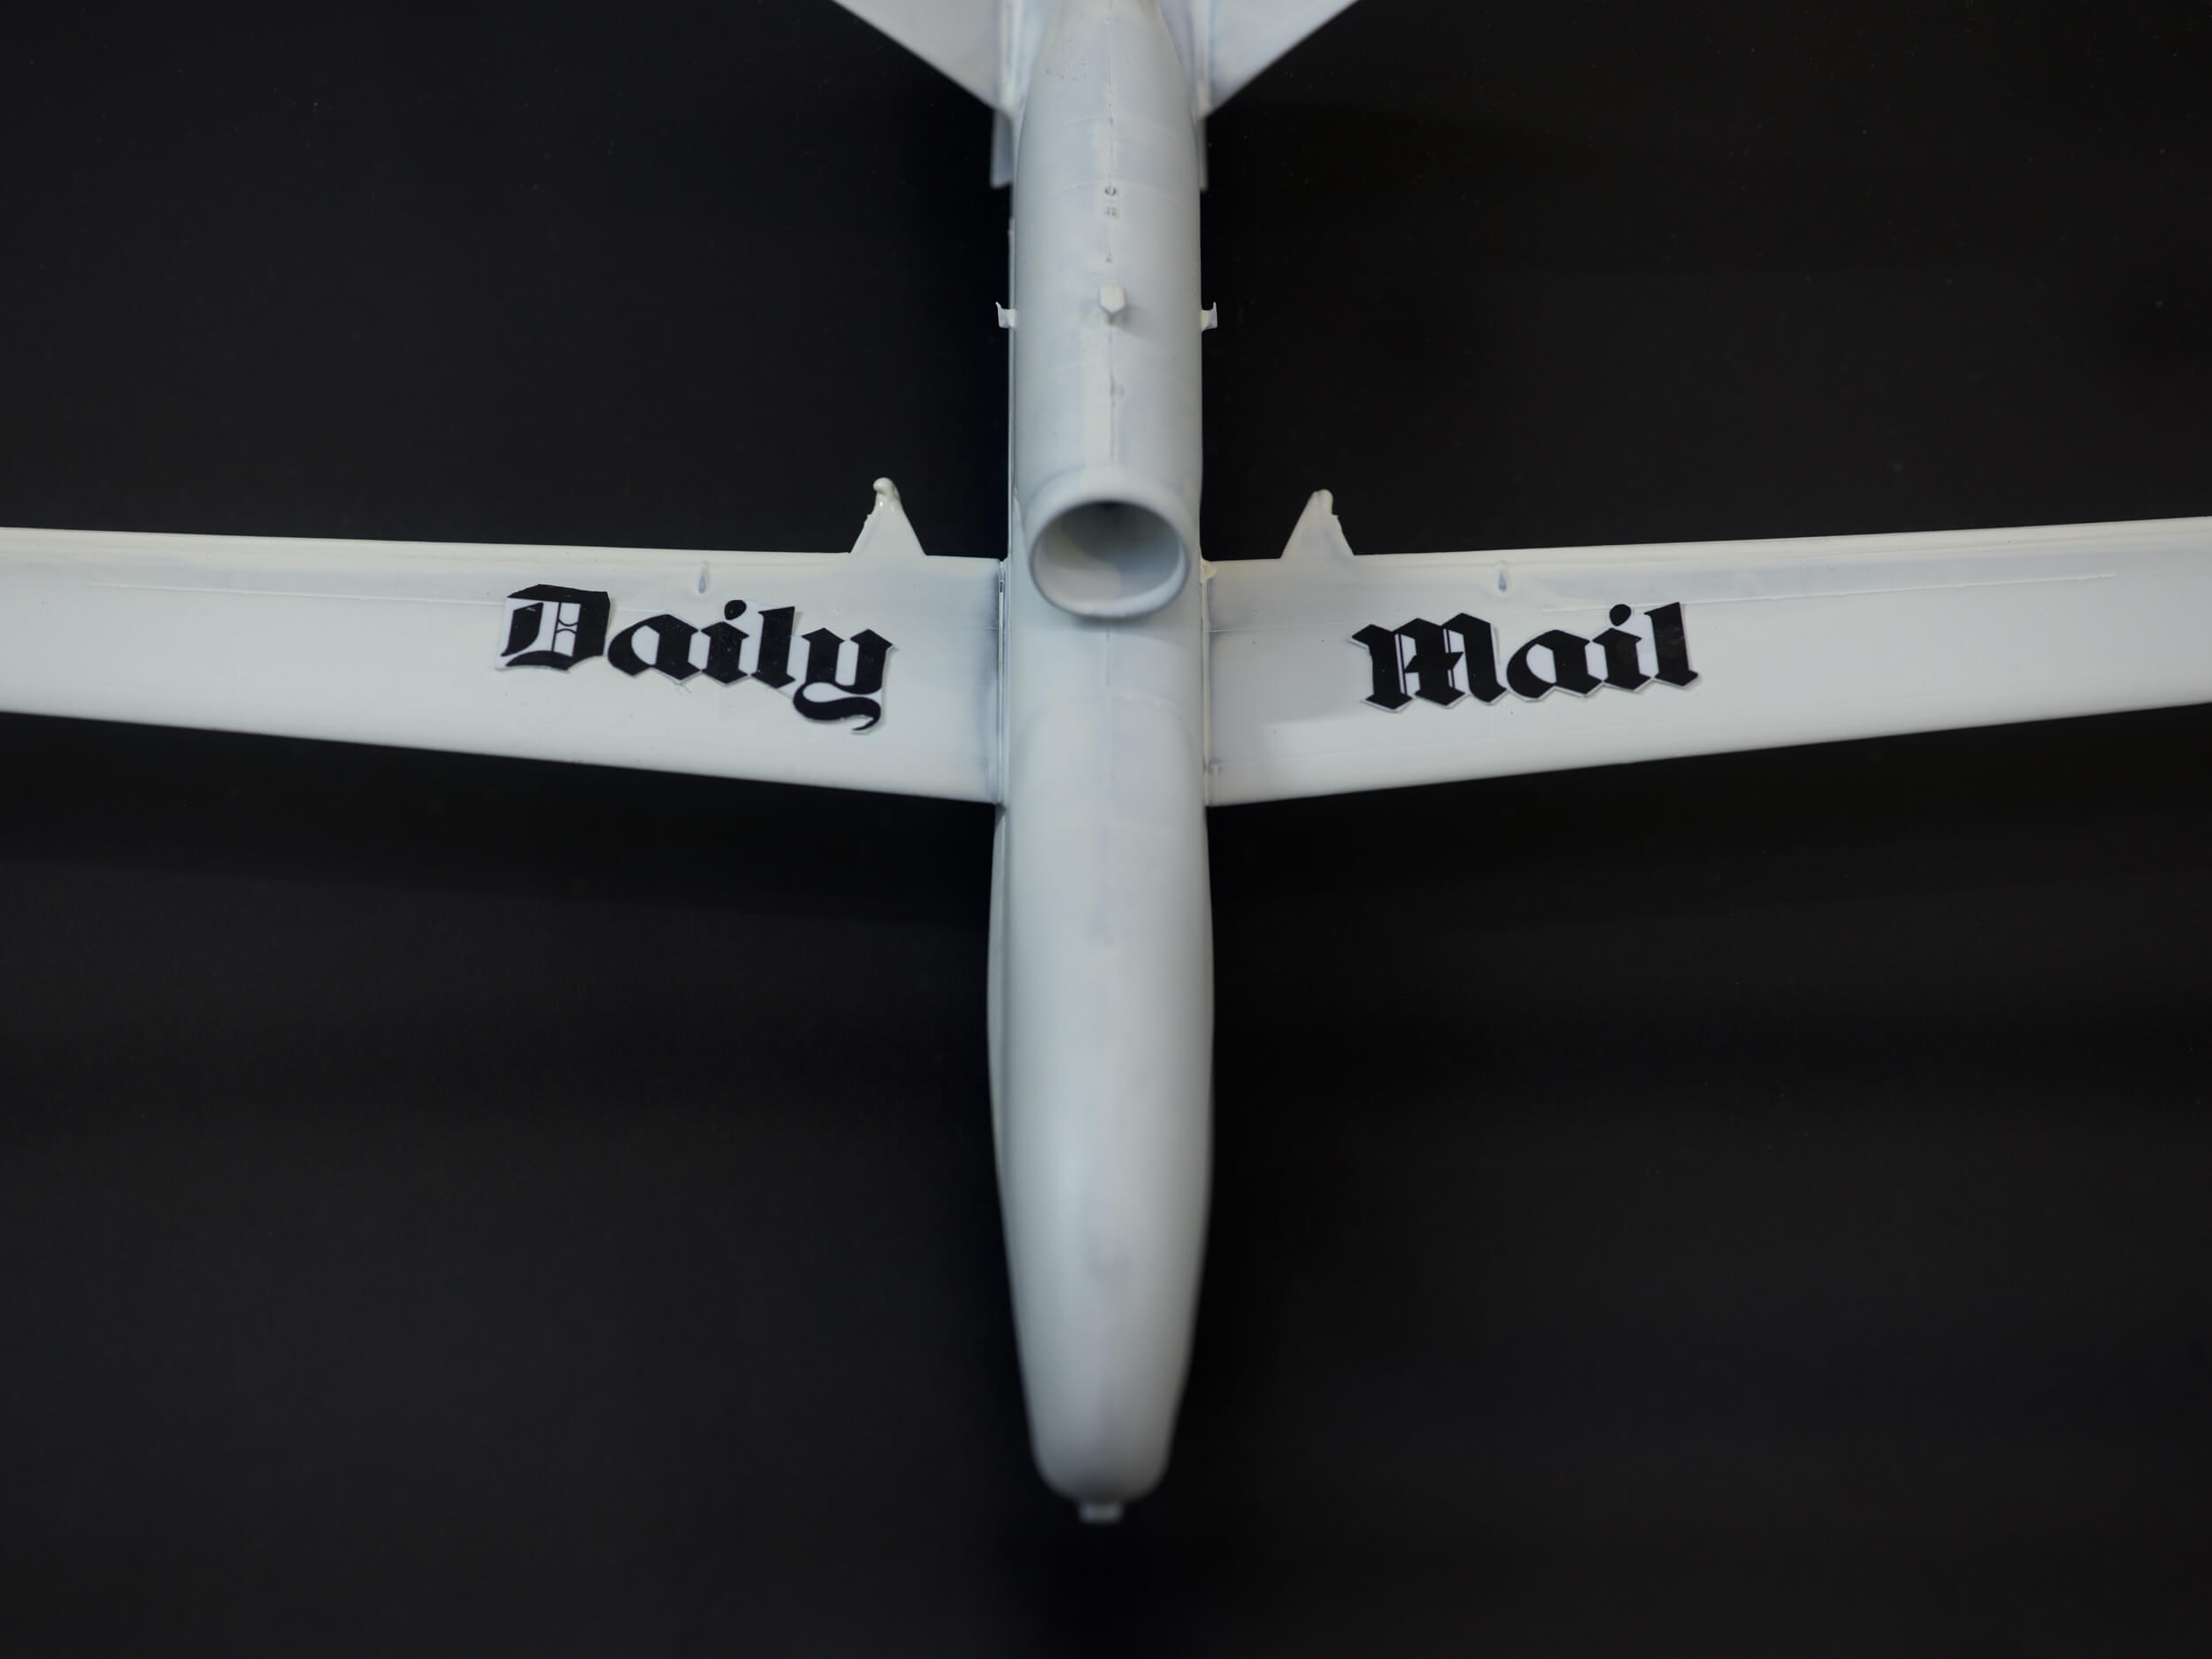 Daily Mail Drone